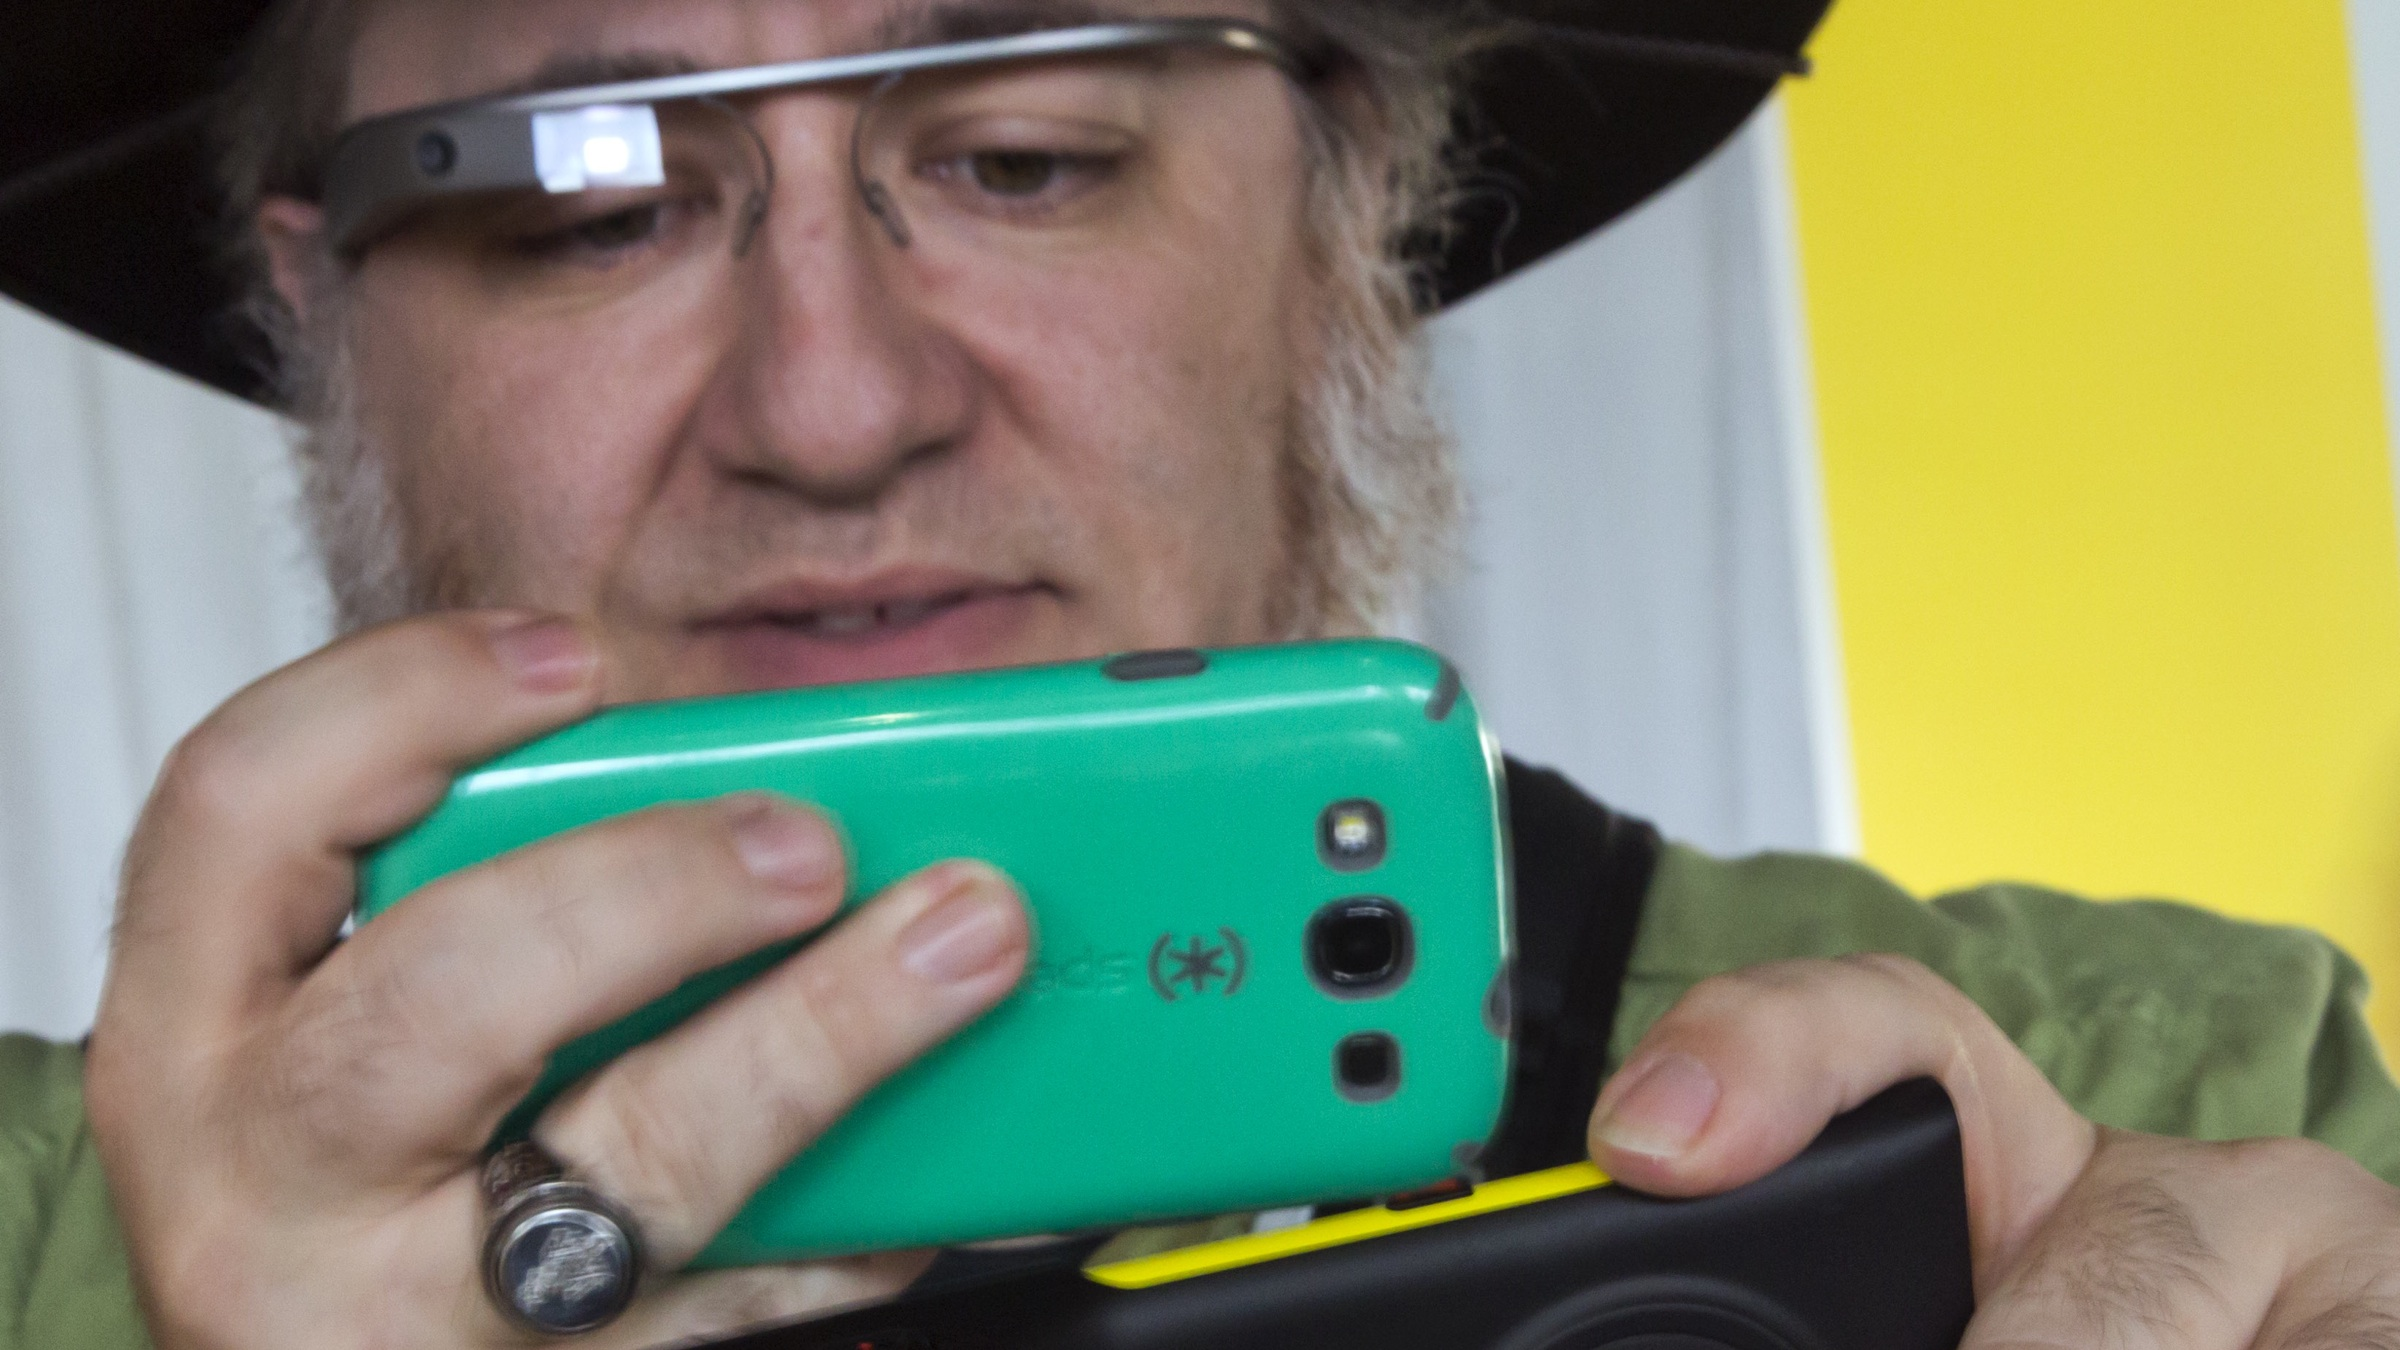 Journalist Andy Inahtko, from Chicago, wearing Google Glass, uses a smartphone to photograph a Nokia Lumia 1020 at its introduction,  in New York,  Thursday, July 11, 2013. The Nokia Lumia 1020, with a 41-megapixel camera, records more detail than other camera phones and even tops point-and-shoot cameras. (AP Photo/Richard Drew)